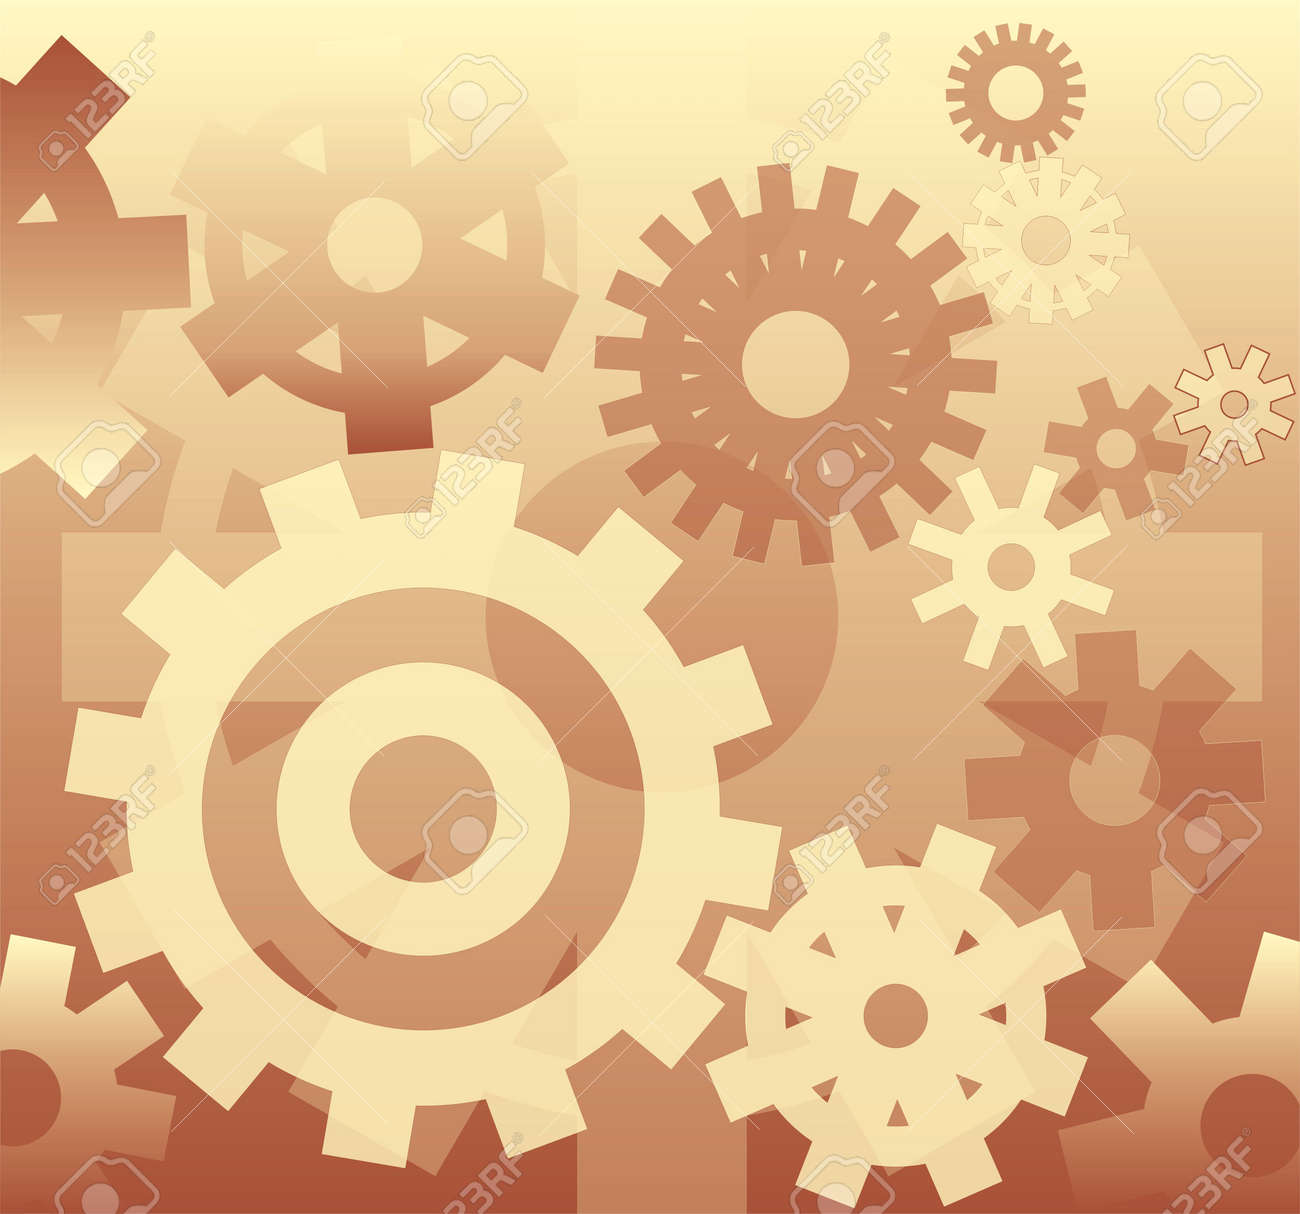 Background - mechanism, illustration Stock Photo - 299489